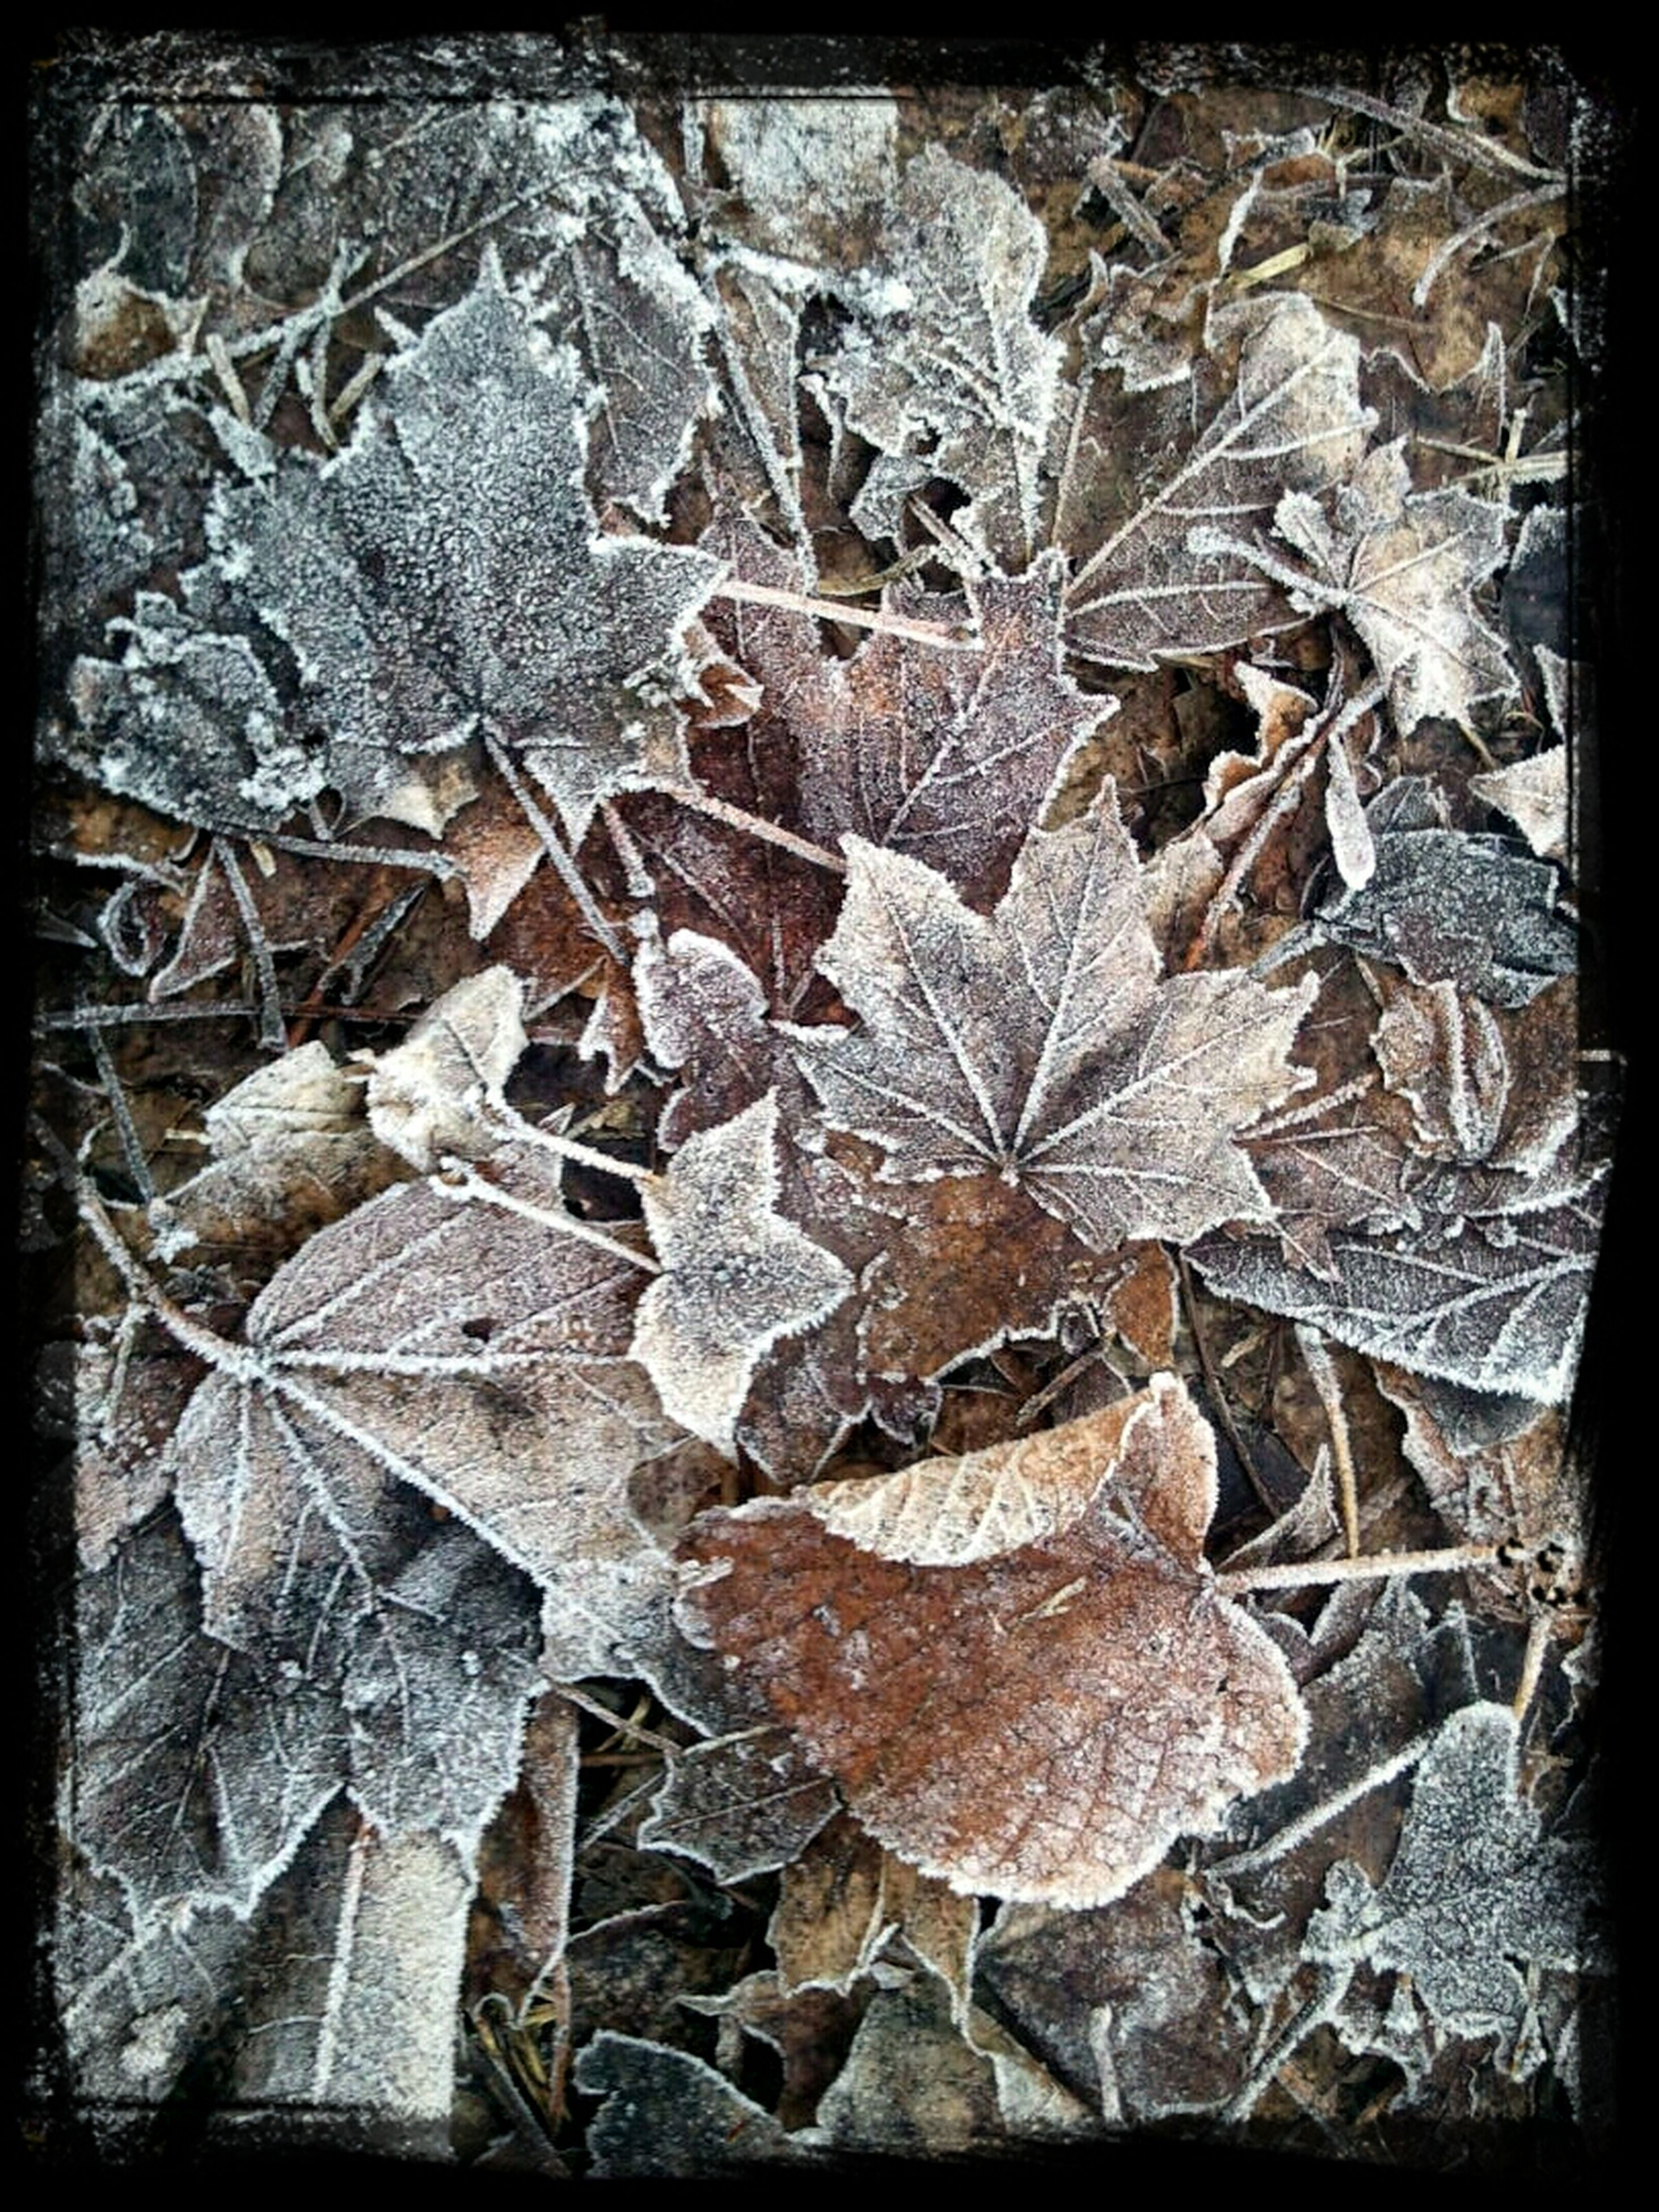 transfer print, auto post production filter, high angle view, leaf, dry, season, close-up, nature, autumn, day, outdoors, ground, no people, leaves, natural pattern, fallen, winter, fragility, wood - material, cold temperature